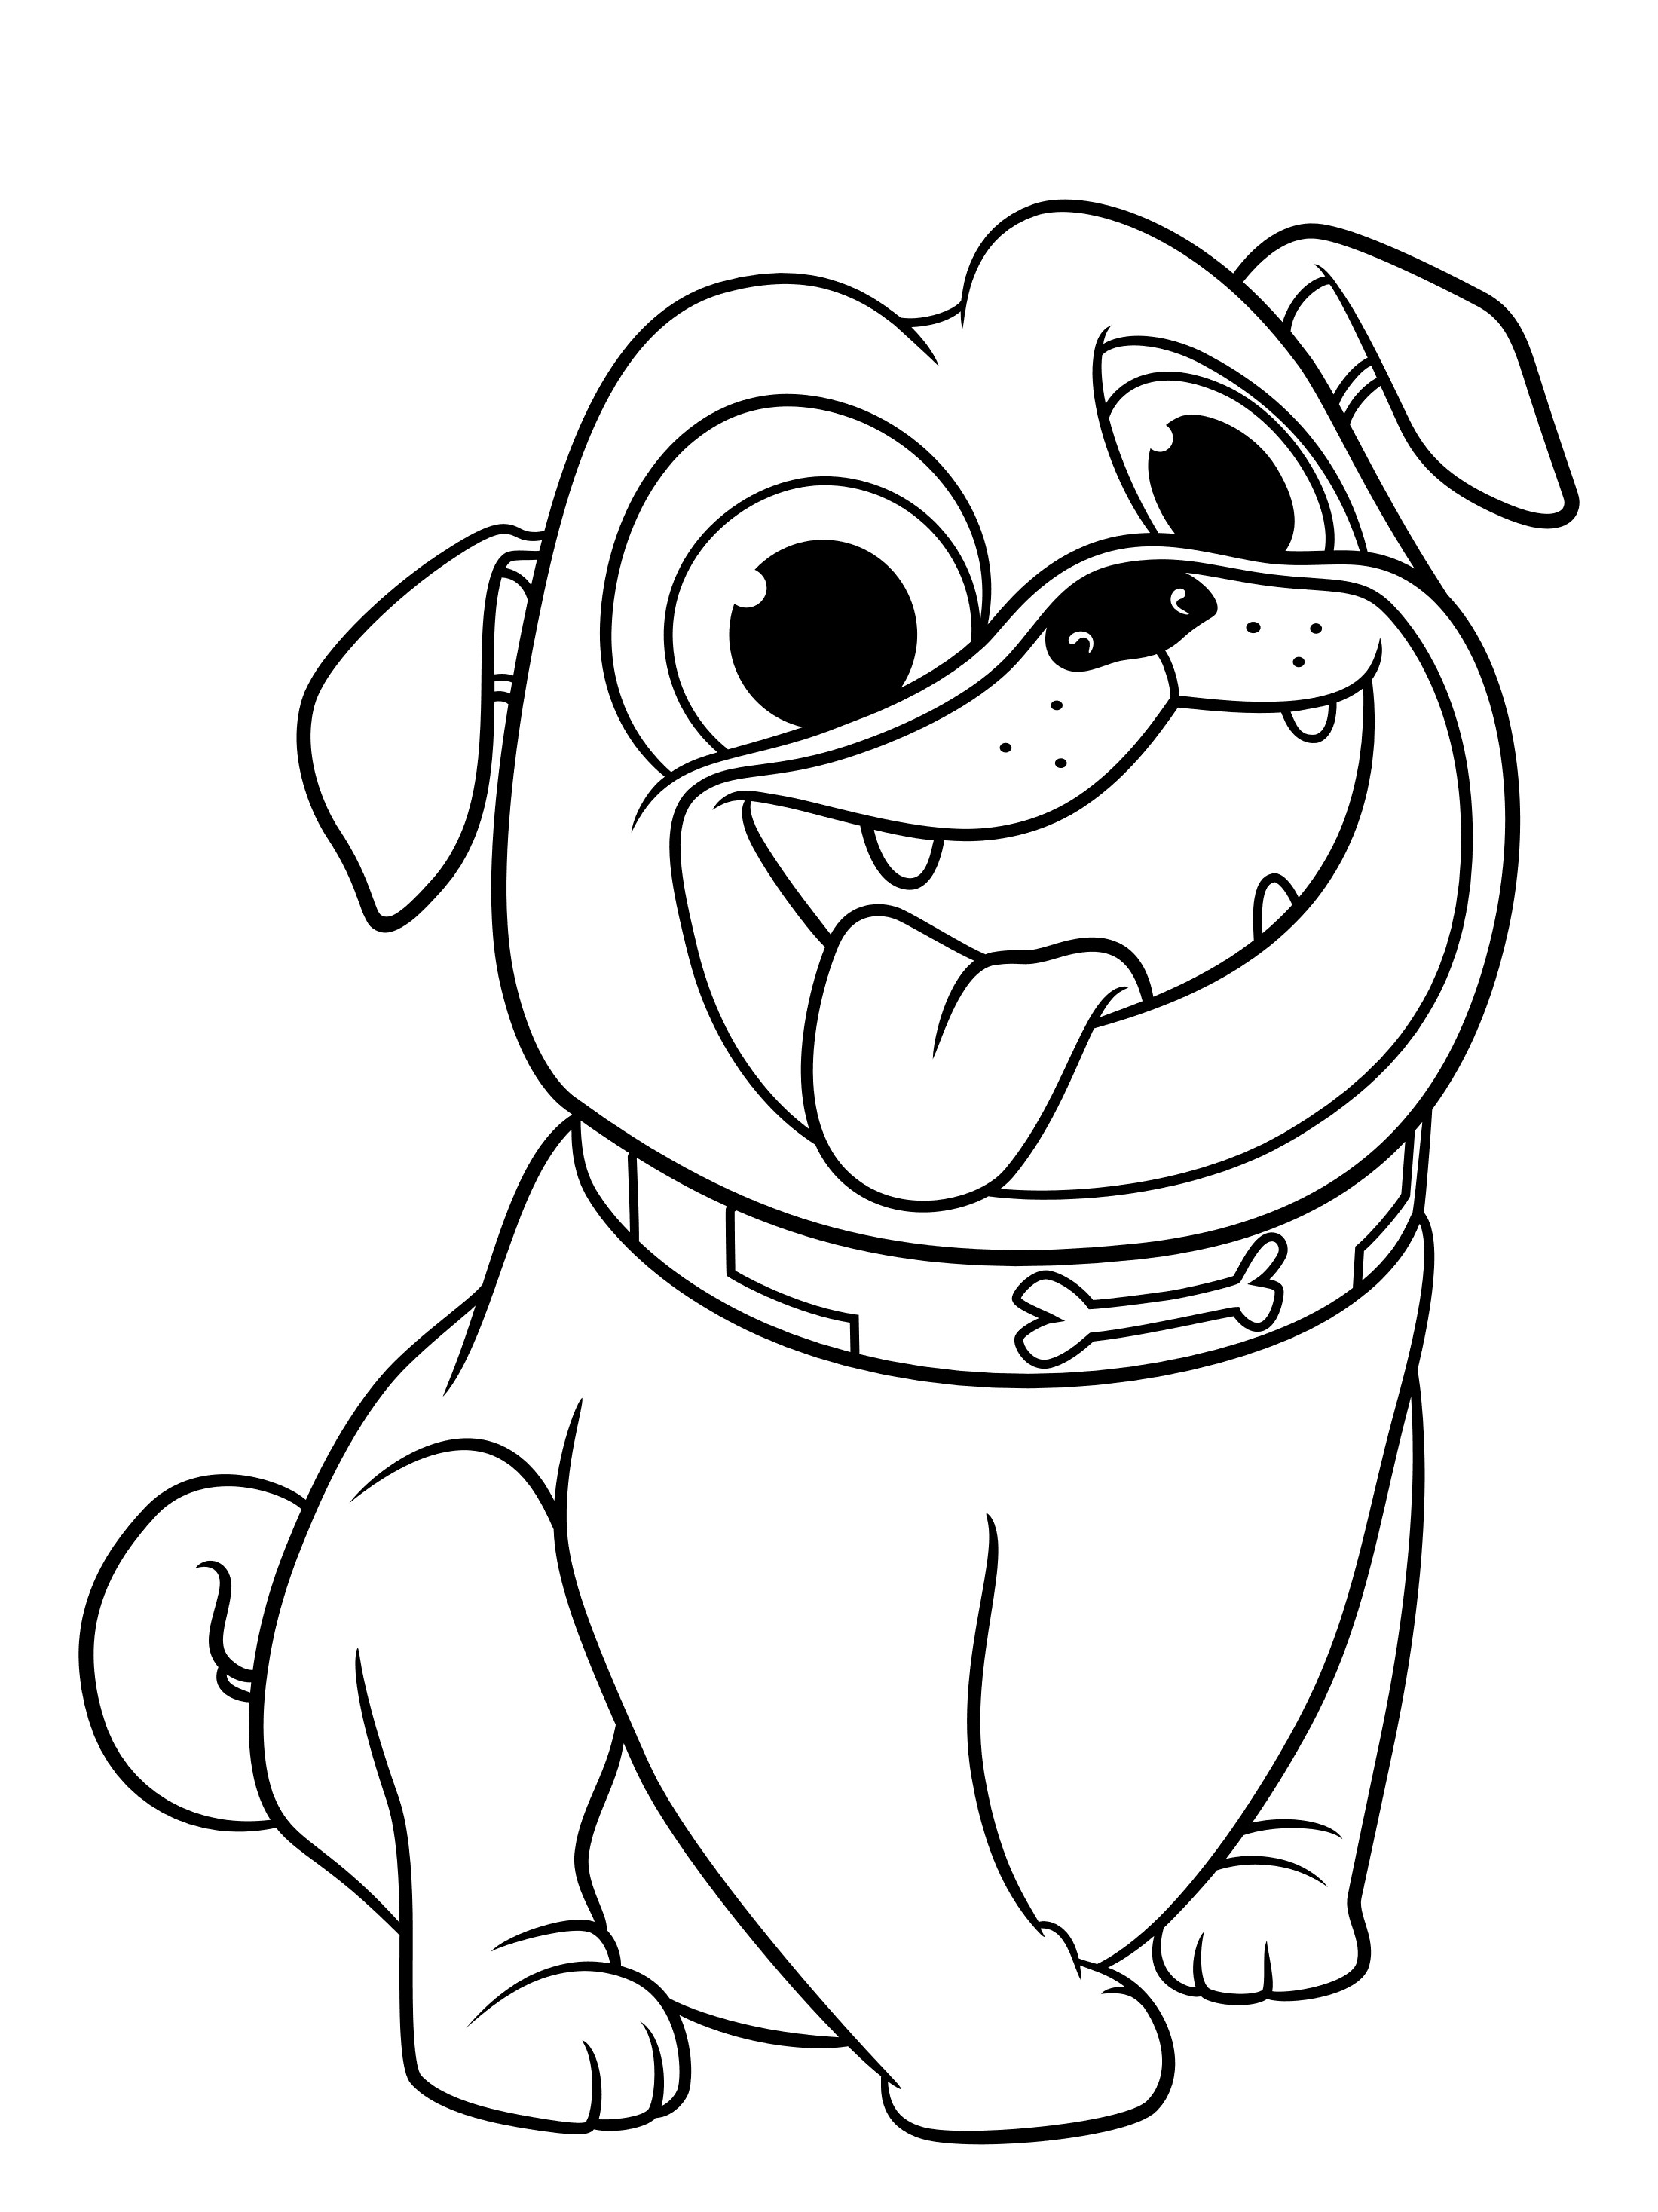 coloring pages of puppies free printable puppies coloring pages for kids coloring pages puppies of